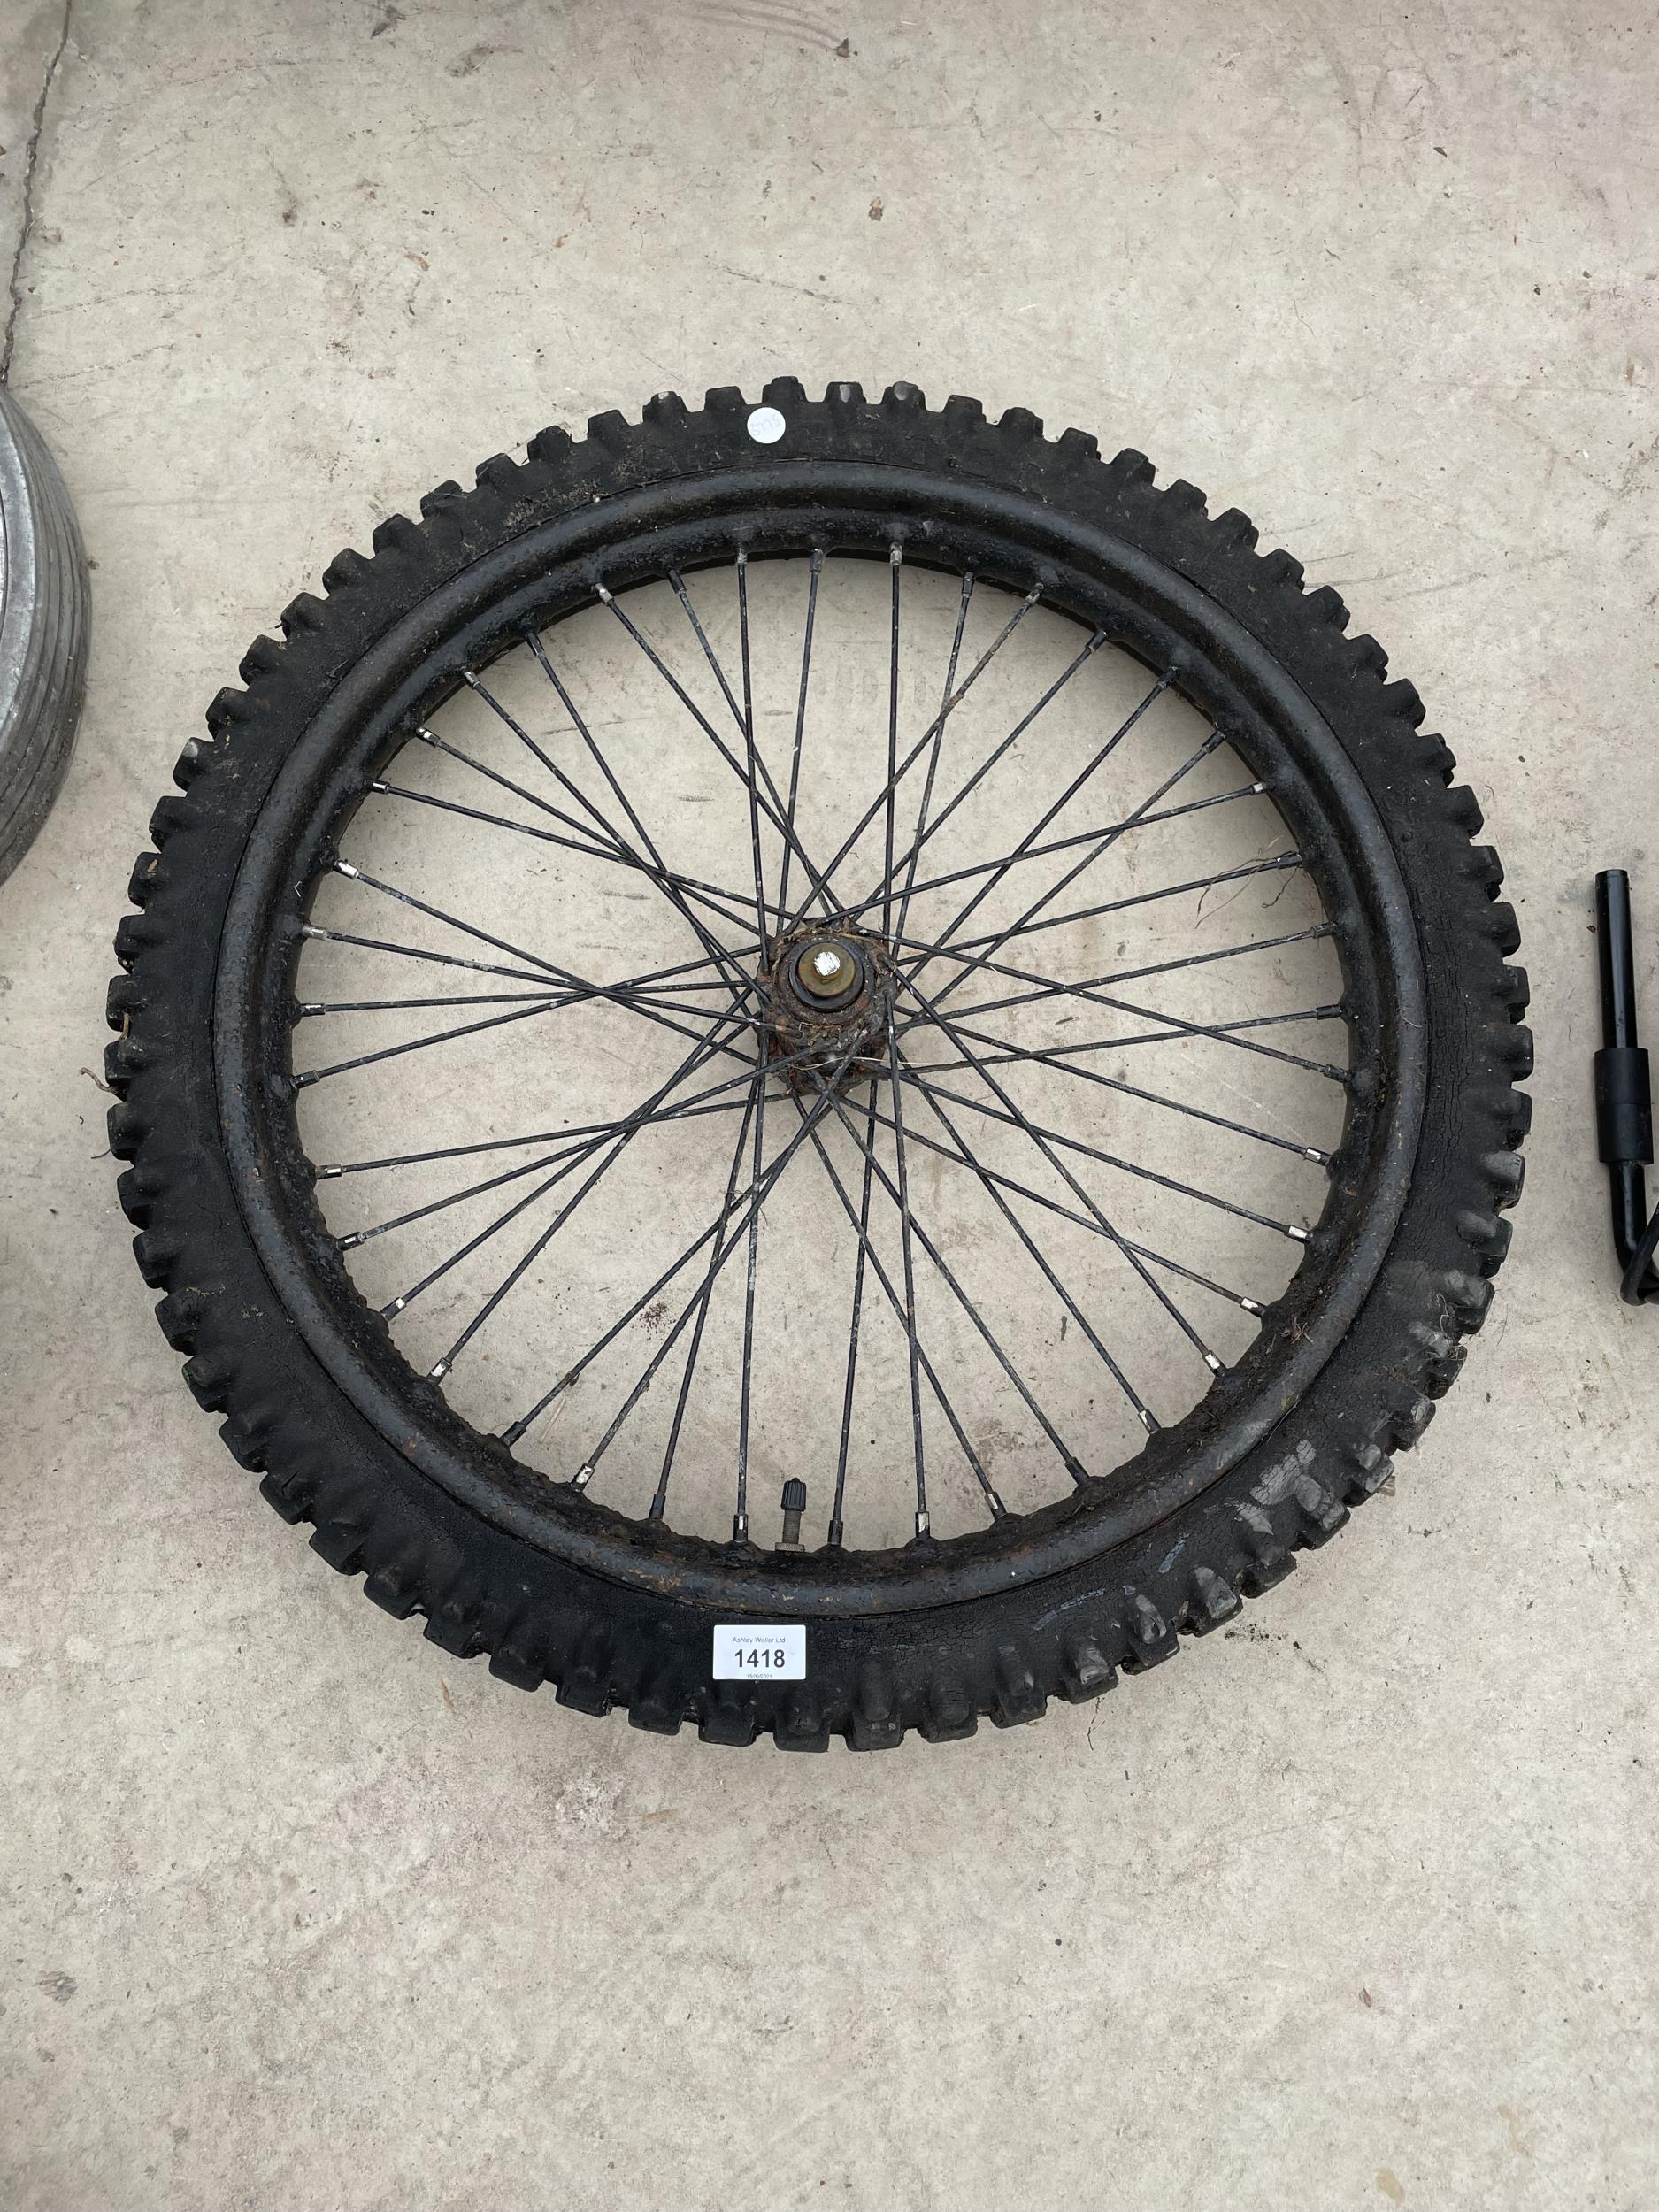 A LARGE THICK TREAD SIDE CAR WHEEL